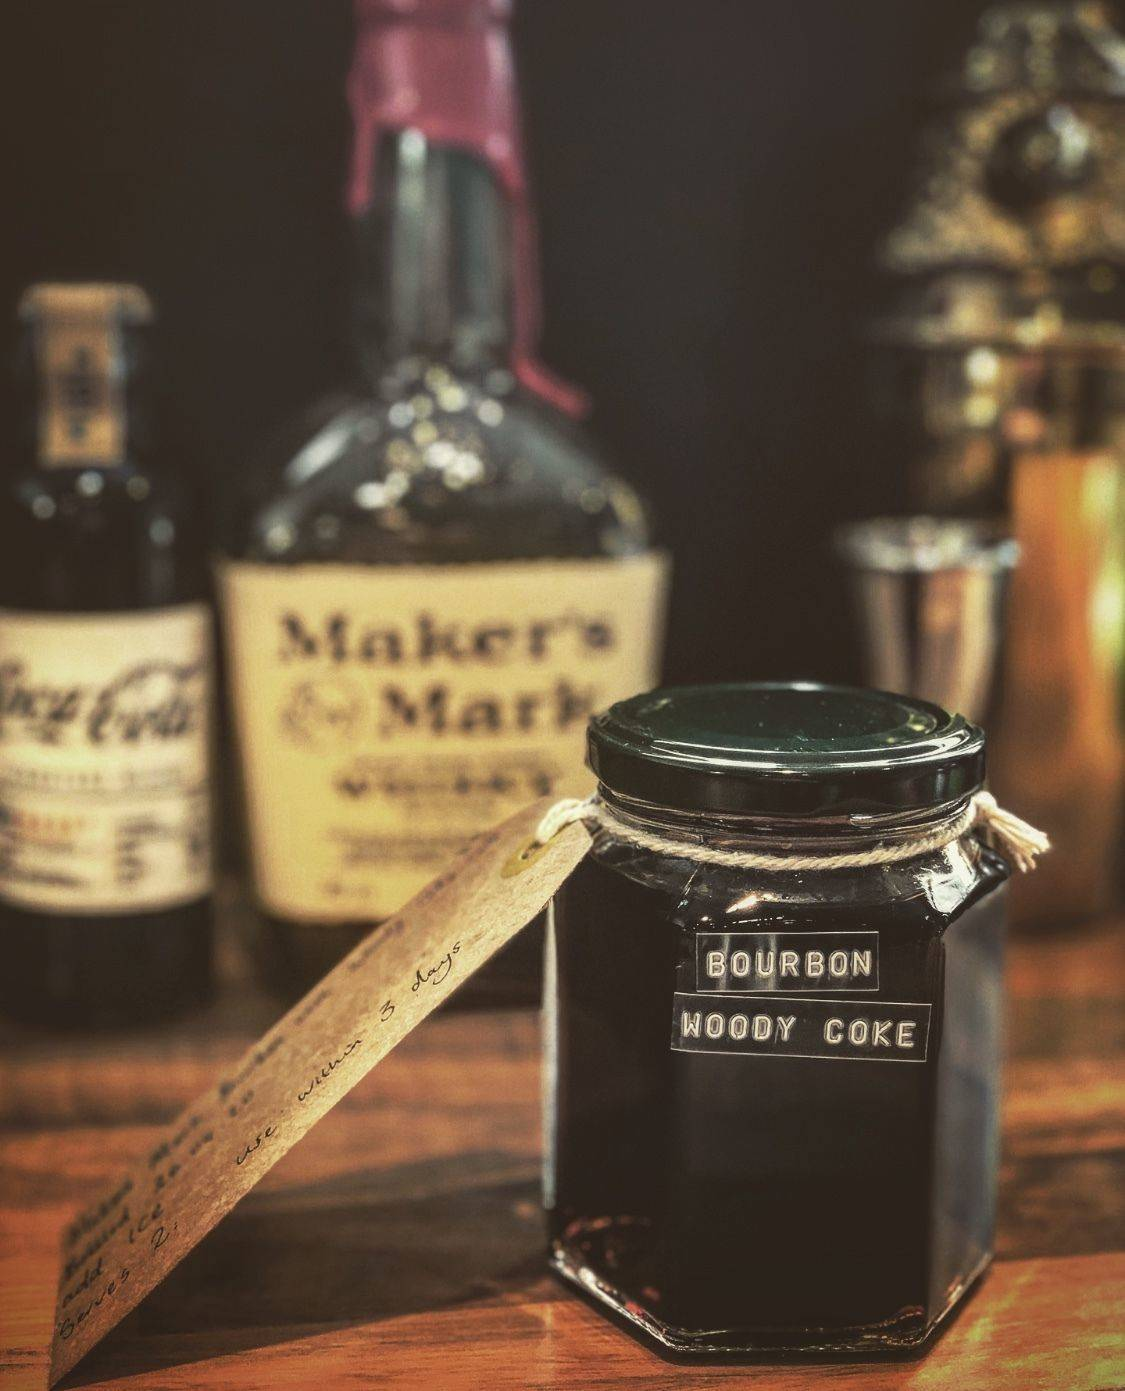 Makers Mark Bourbon with Woody Coke